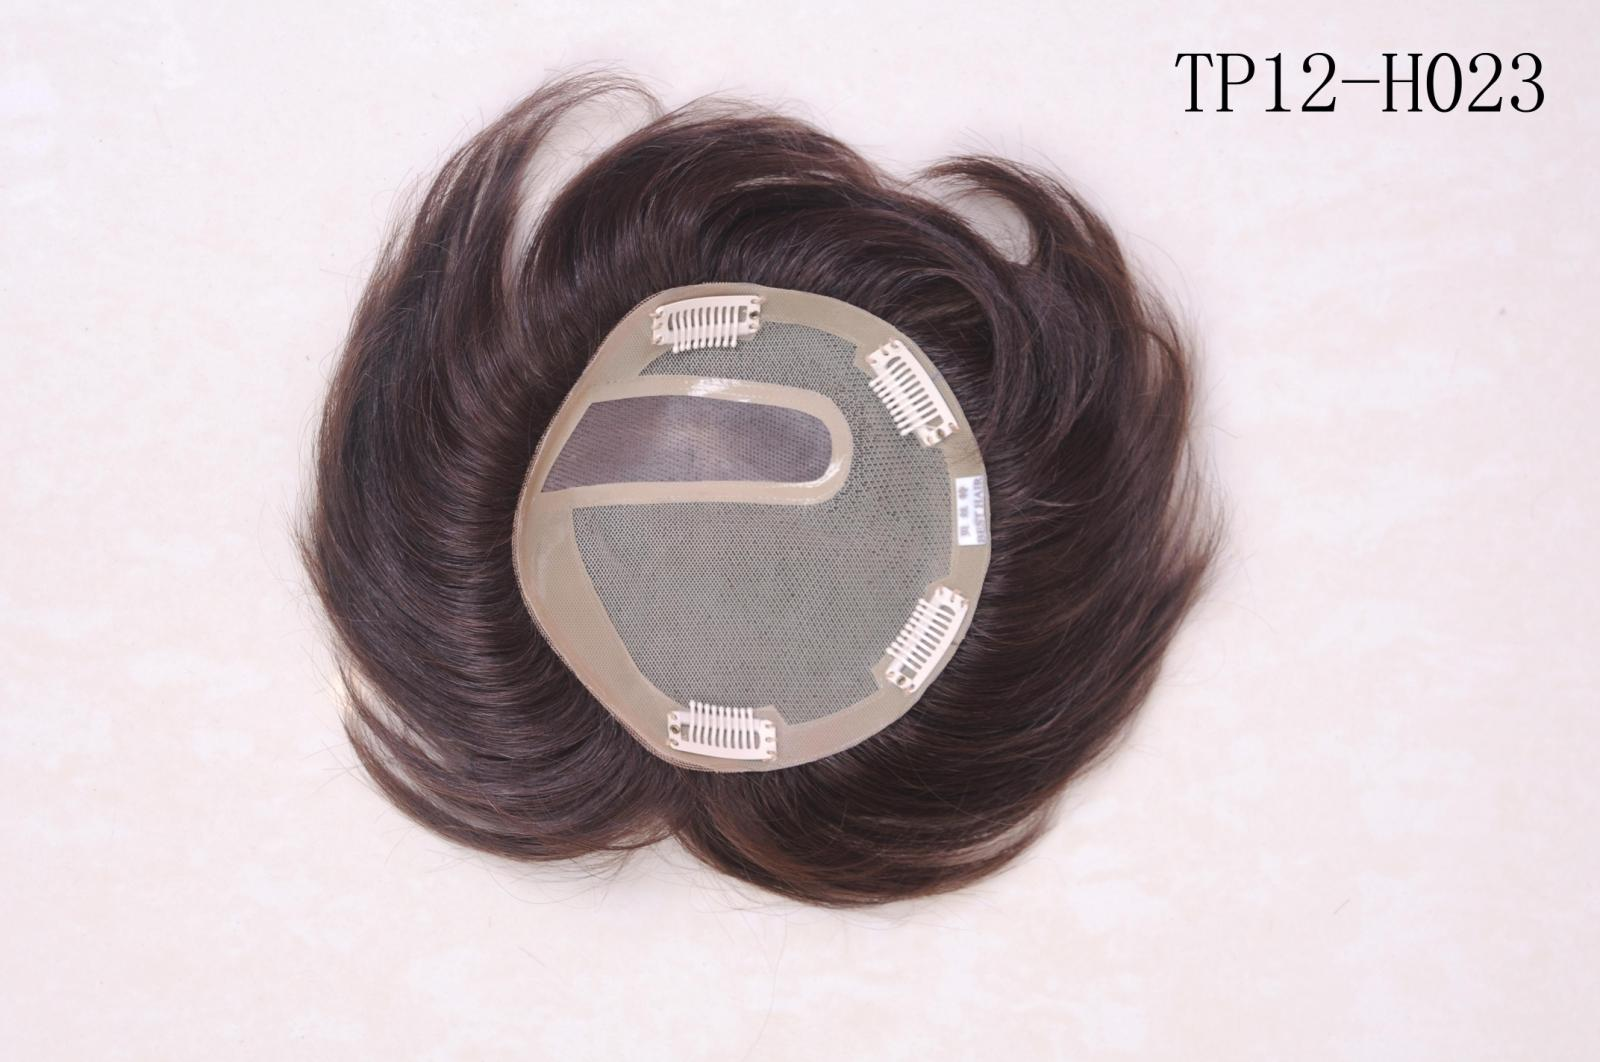 100%  remy human hair Wig male female wig handmade crocheted send to dad<br><br>Aliexpress